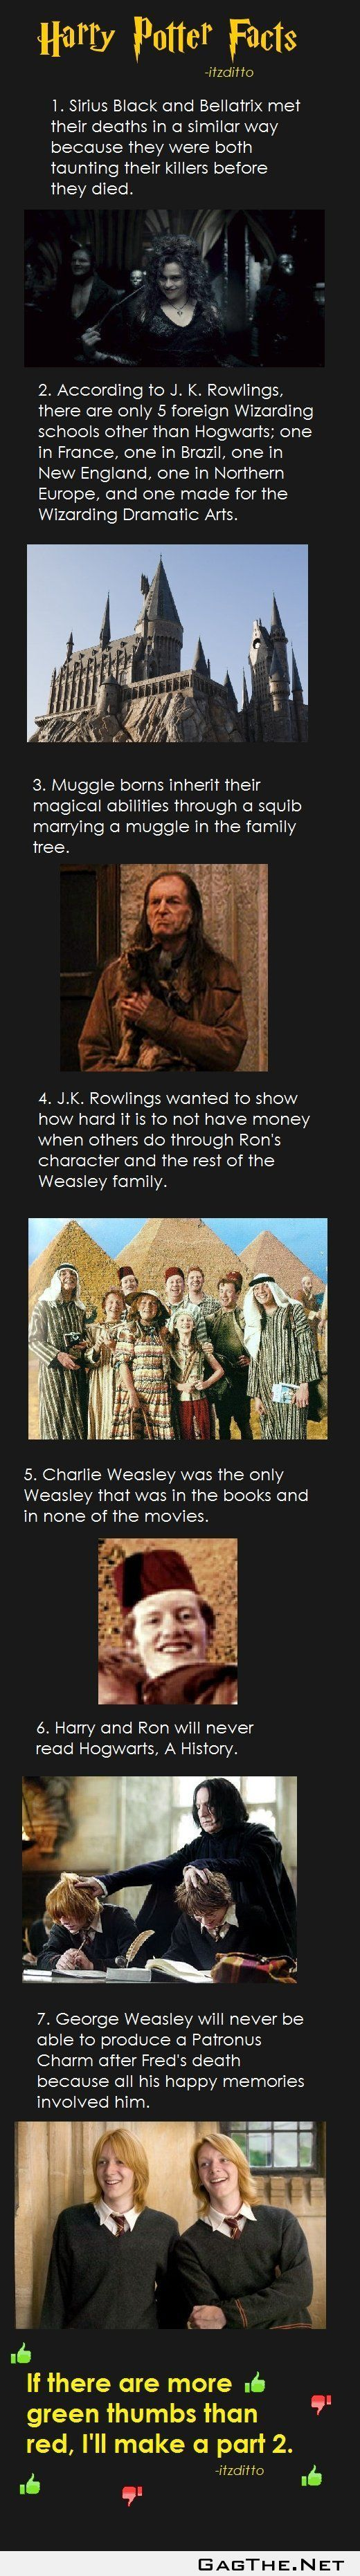 Harry Potter facts part 1 (for those looking)